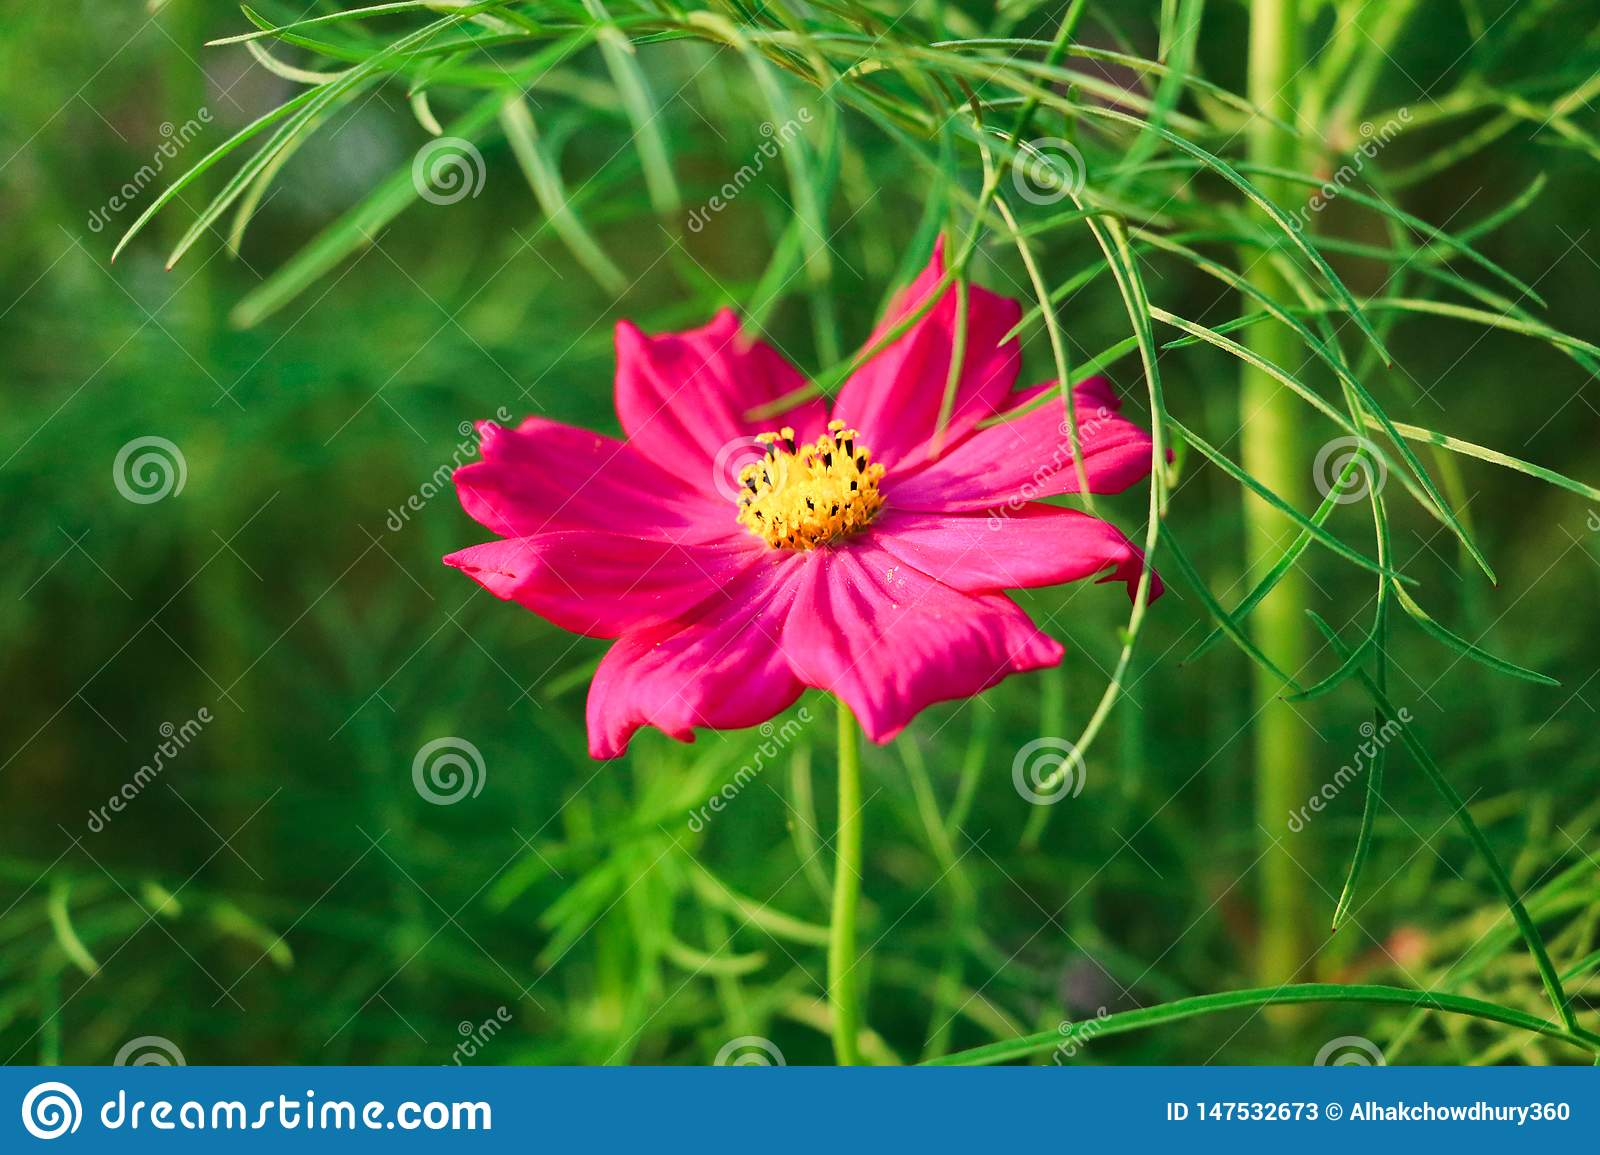 Single red flower on green background green leafs